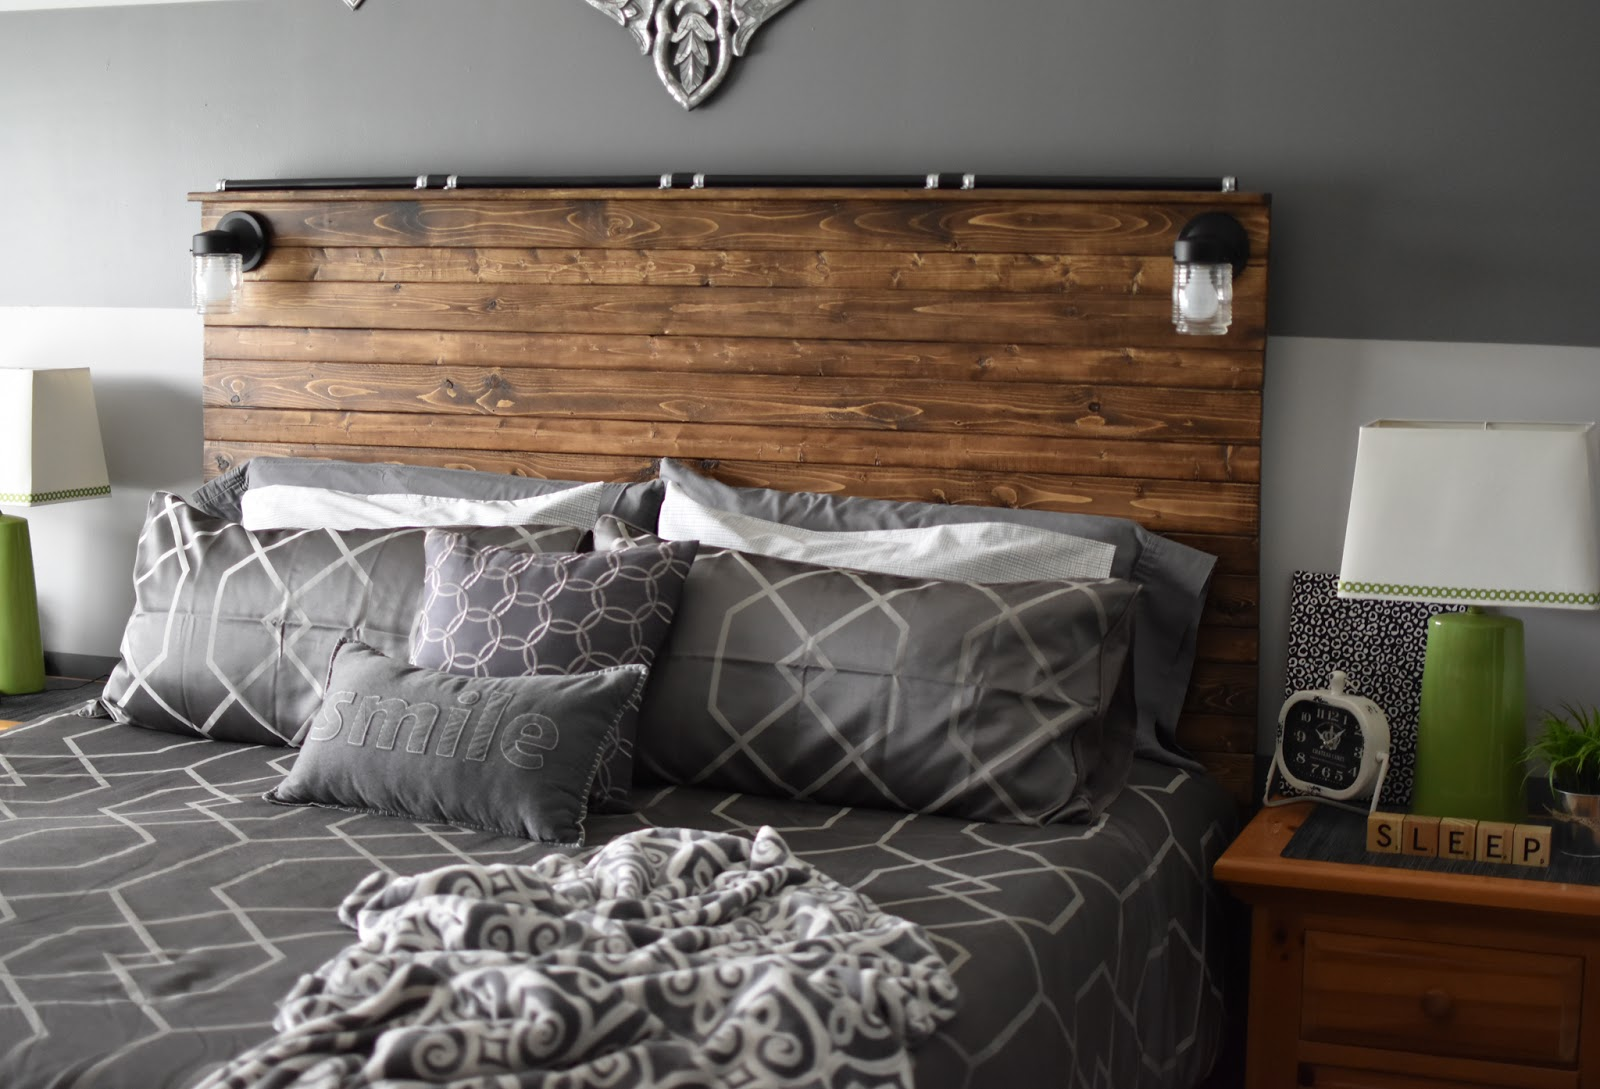 Bedroom in dark gray color